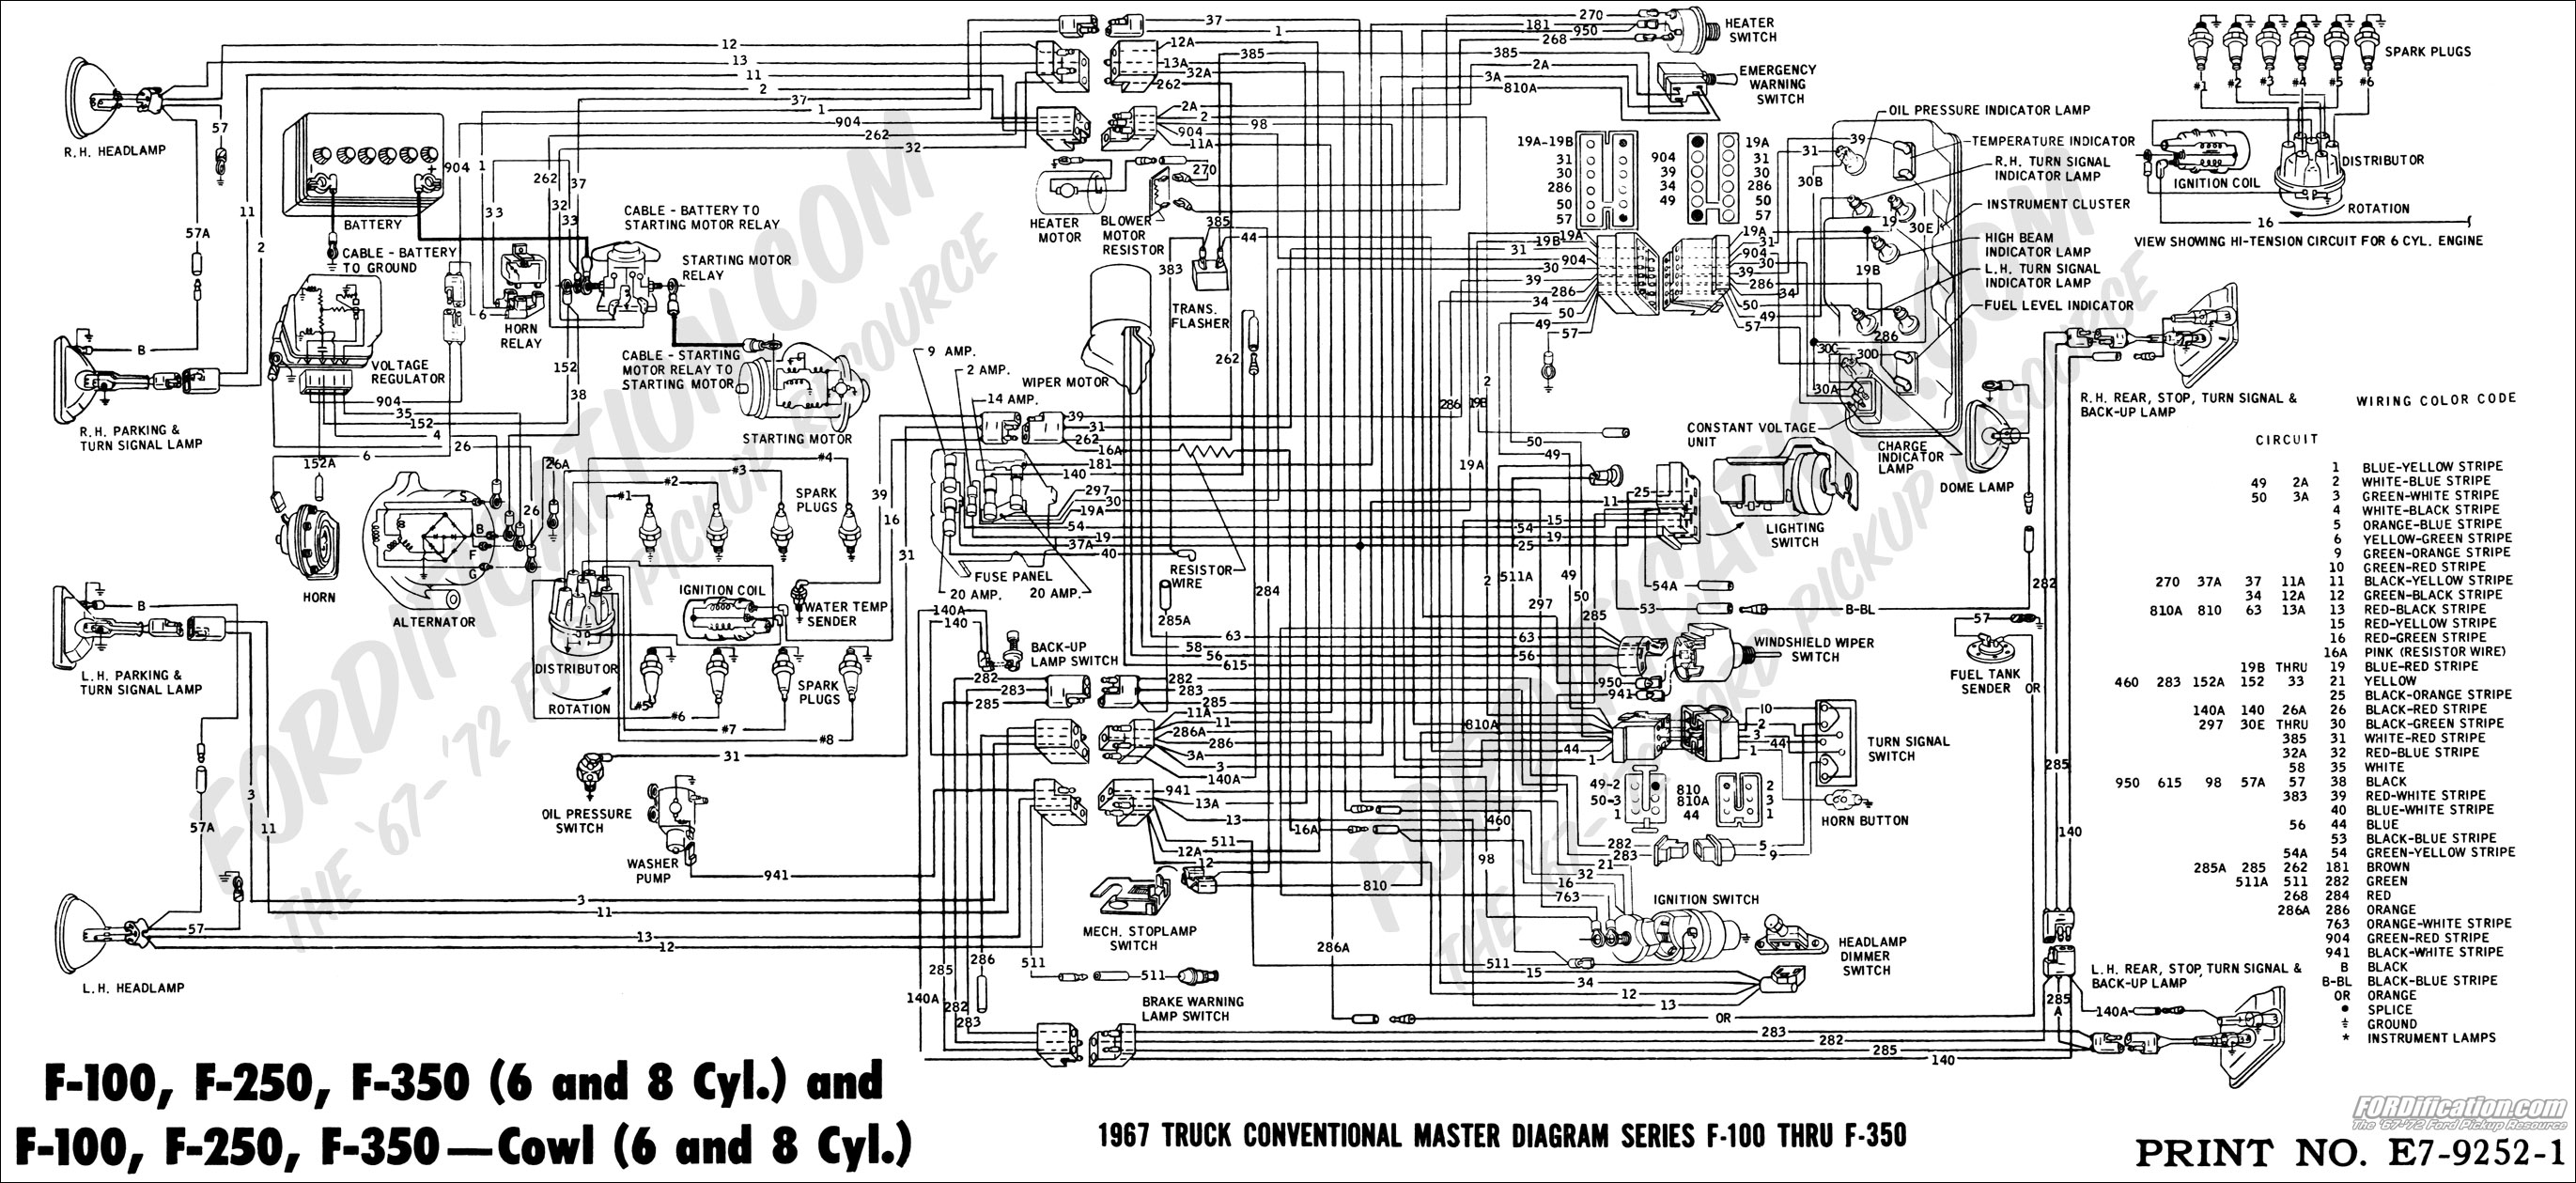 67masterdiagram 99 f150 wiring diagram 99 f150 stereo wiring diagram \u2022 wiring 2005 f150 wiring diagram at gsmx.co